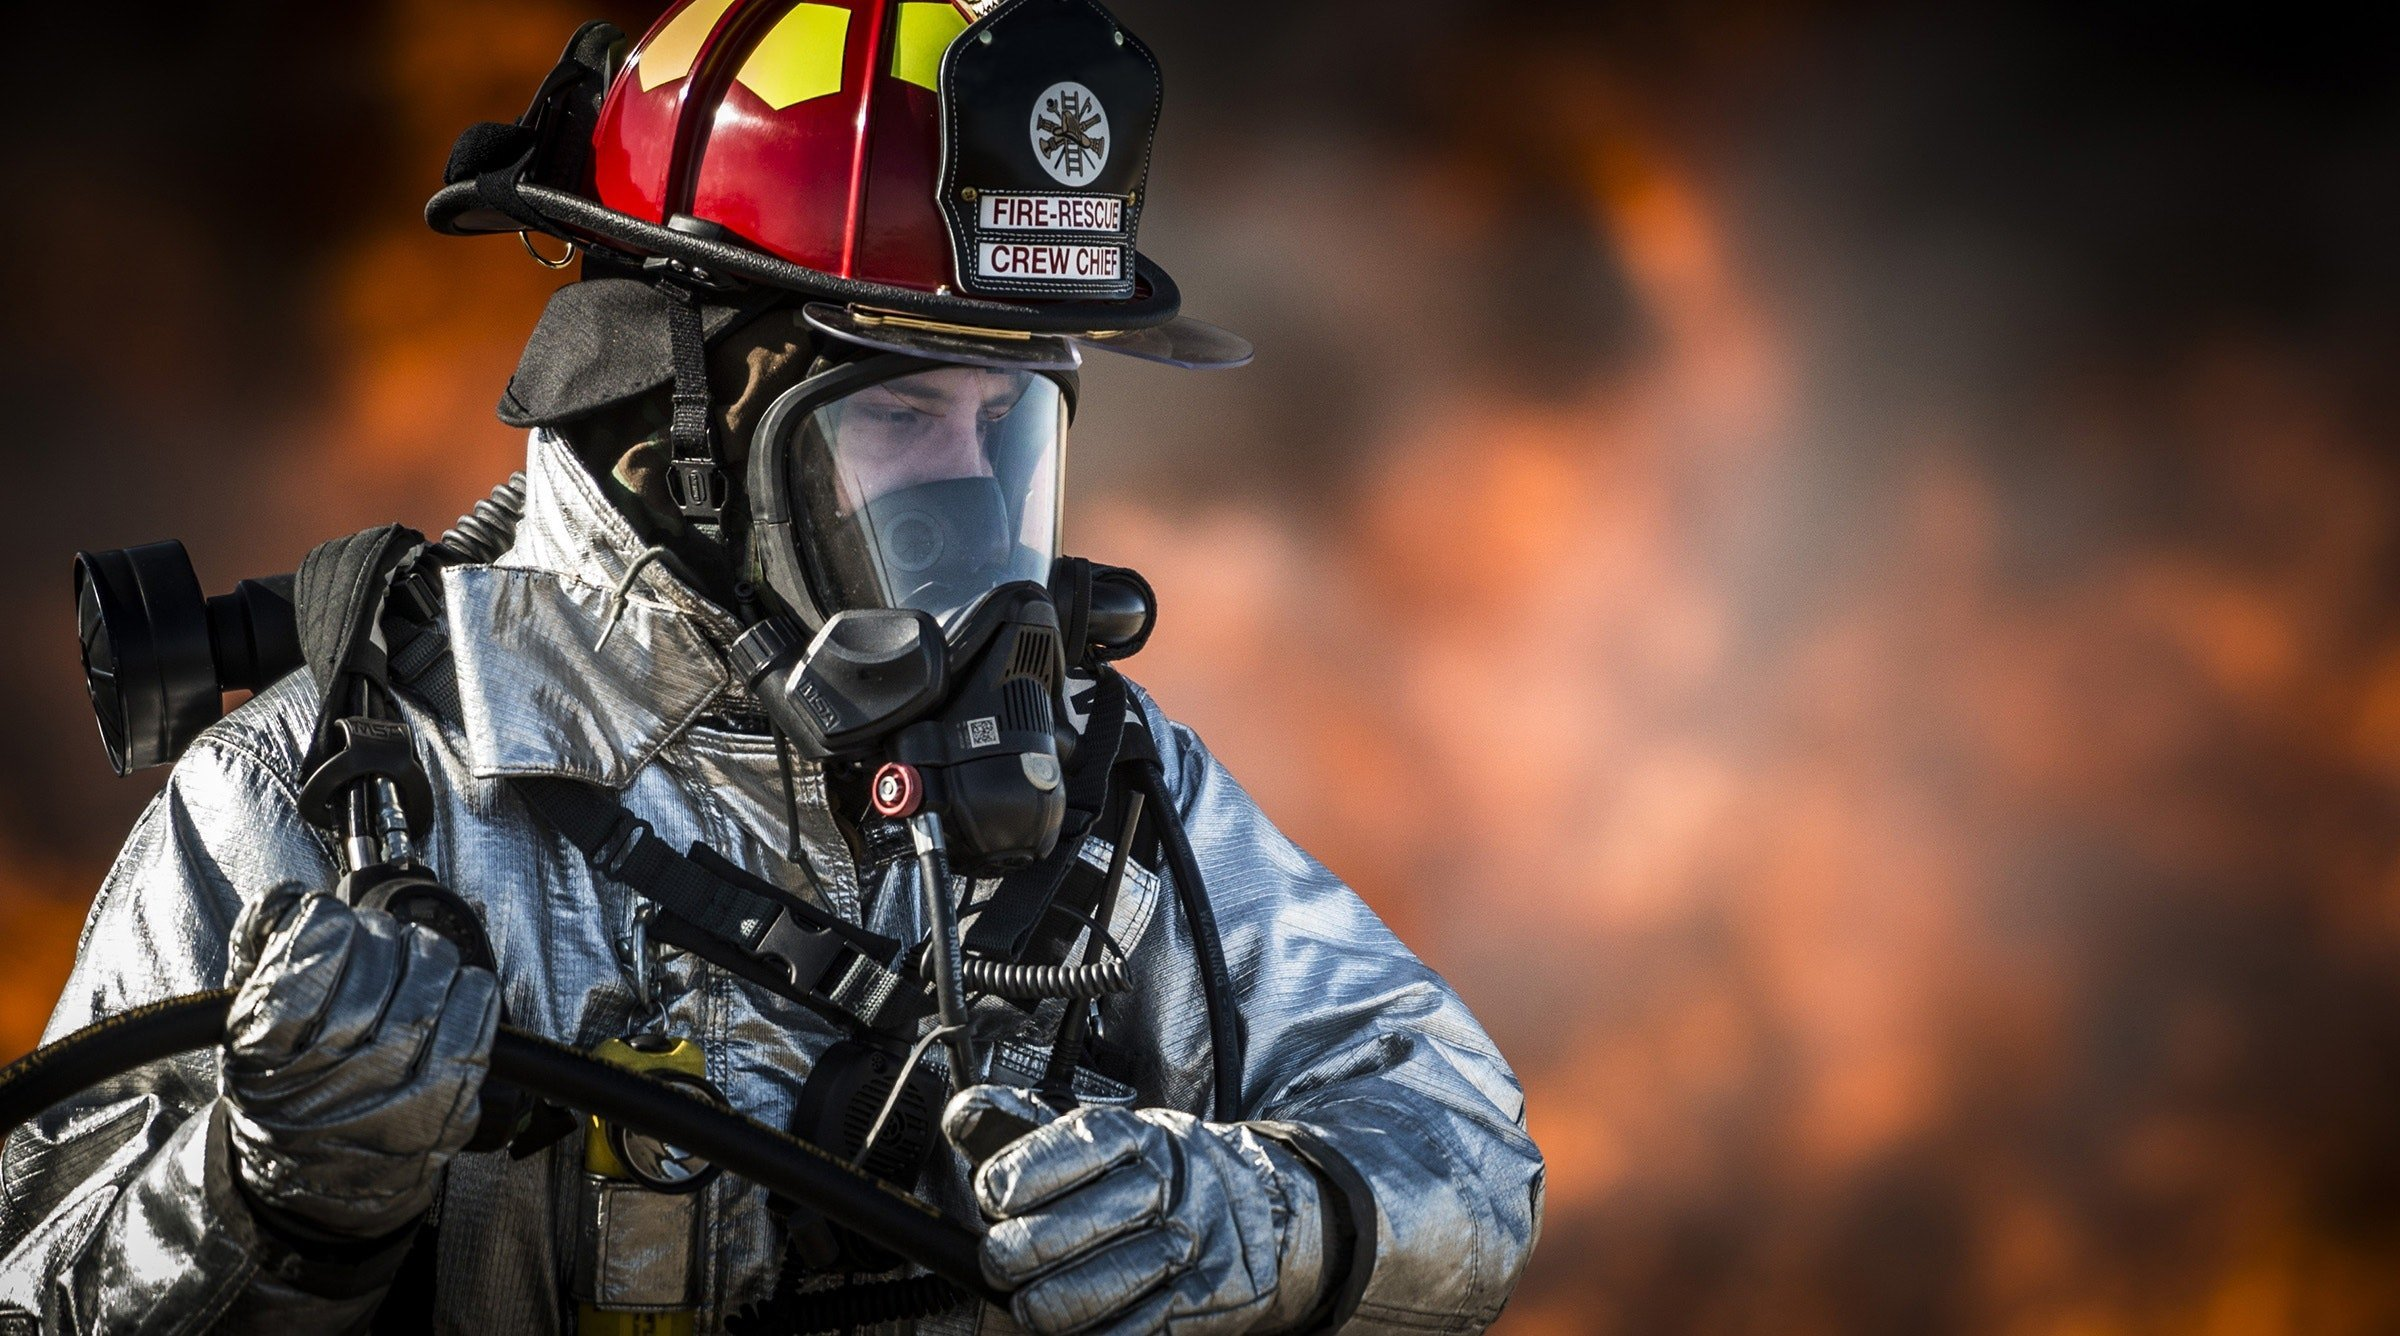 breathing-apparatus-dangerous-emergency-36031 EDIT